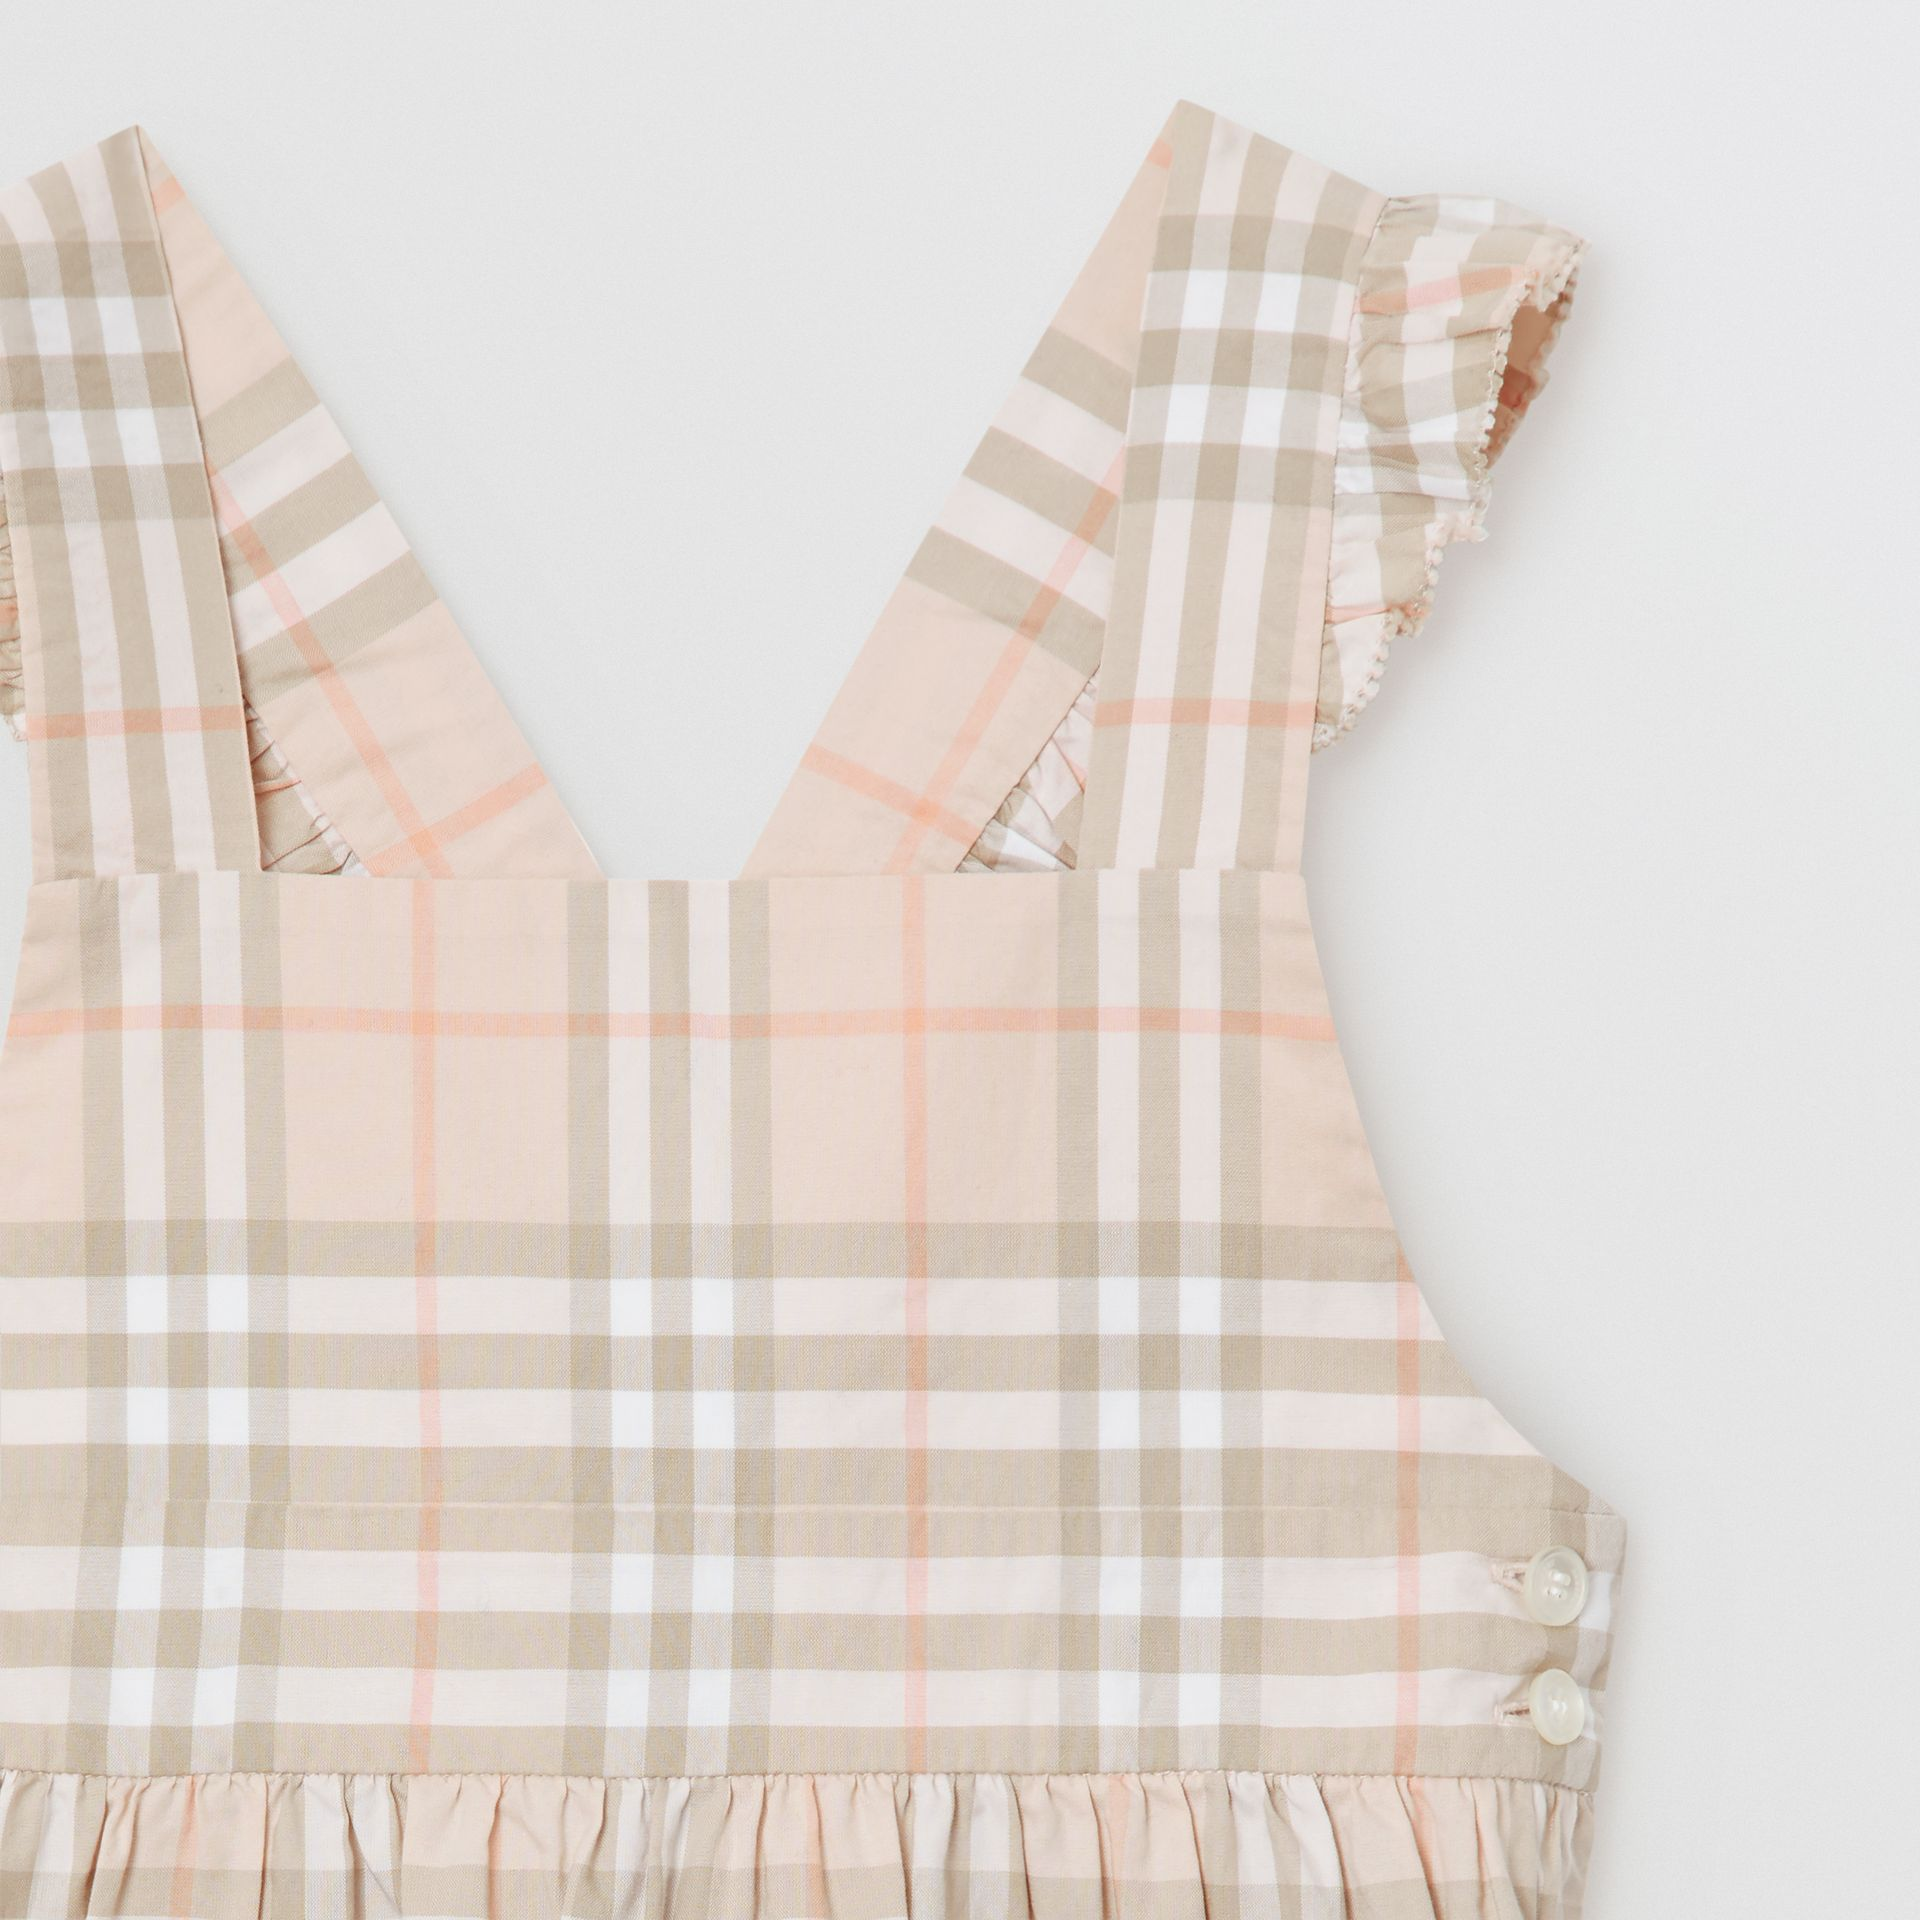 Robe en coton à motif check avec volants (Abricot Rose Pâle) | Burberry - photo de la galerie 4